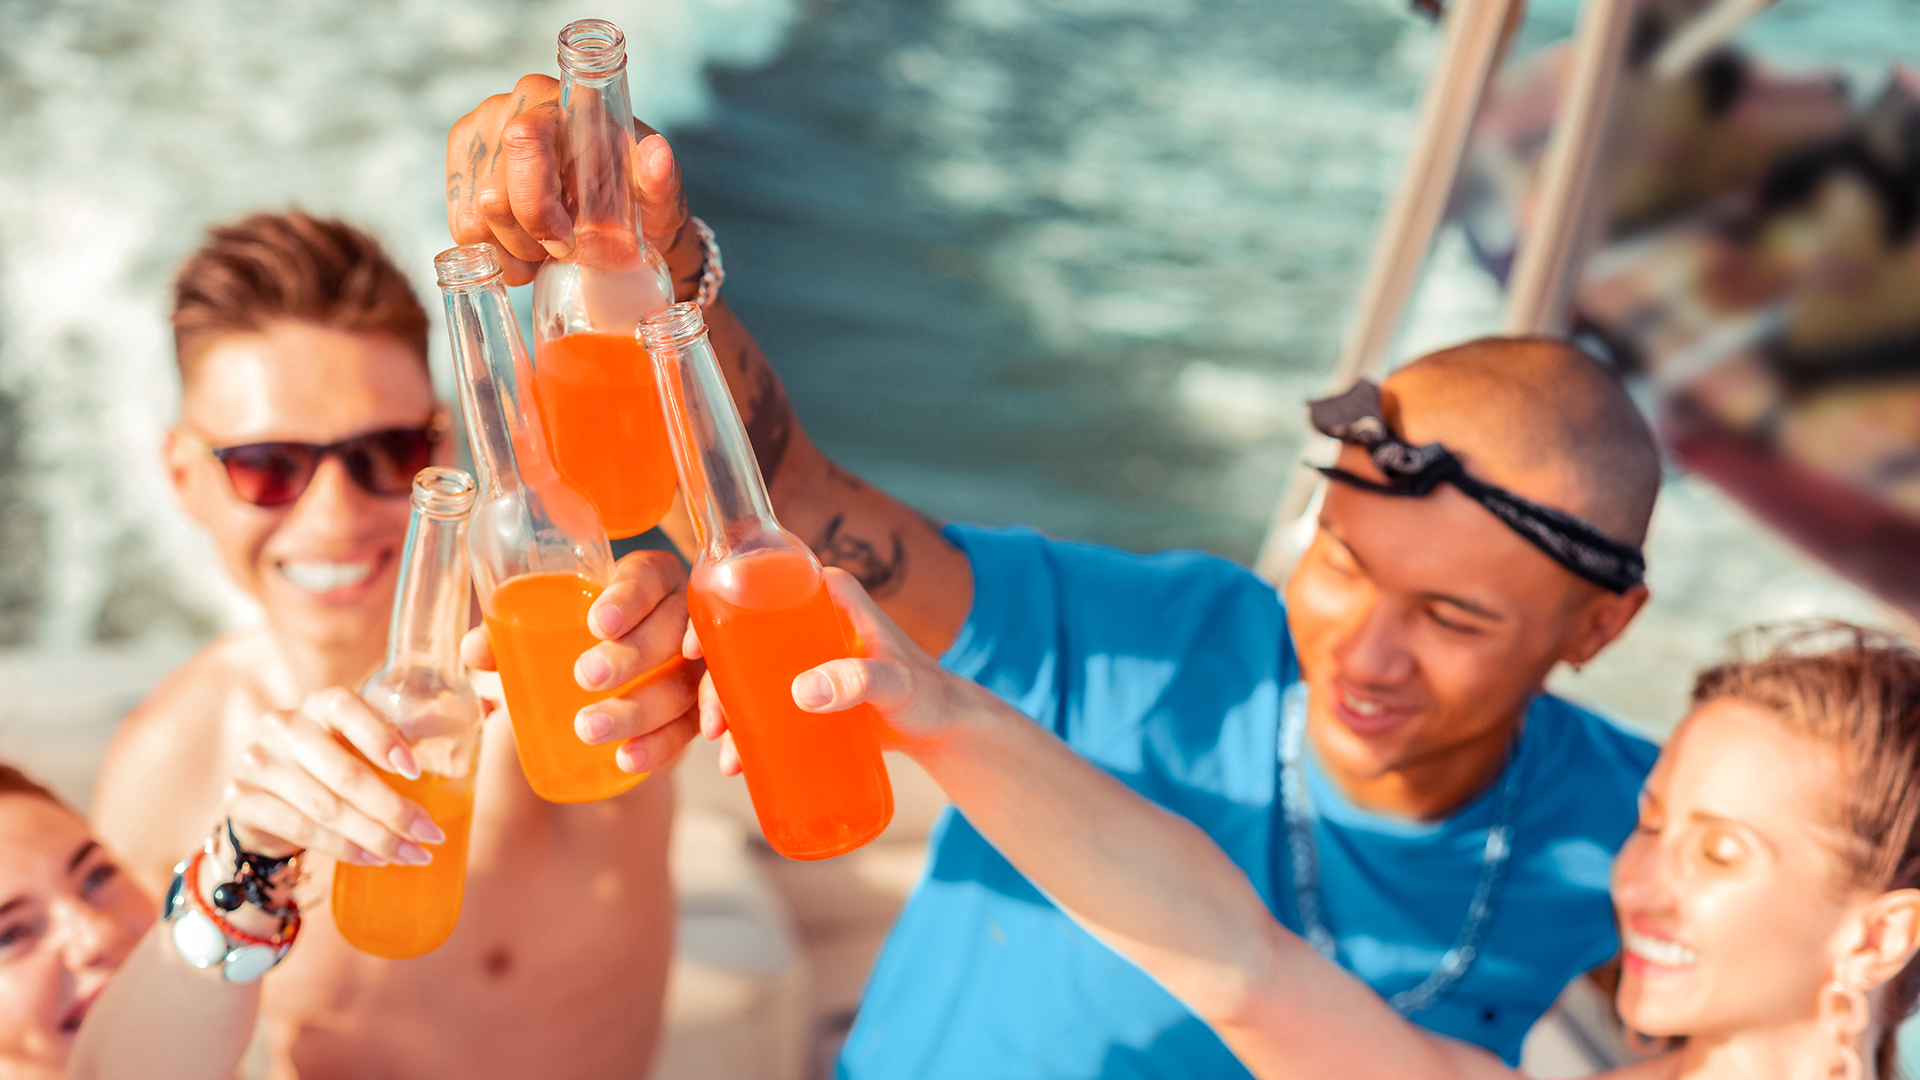 High-spirited people drinking soft drinks on a yacht